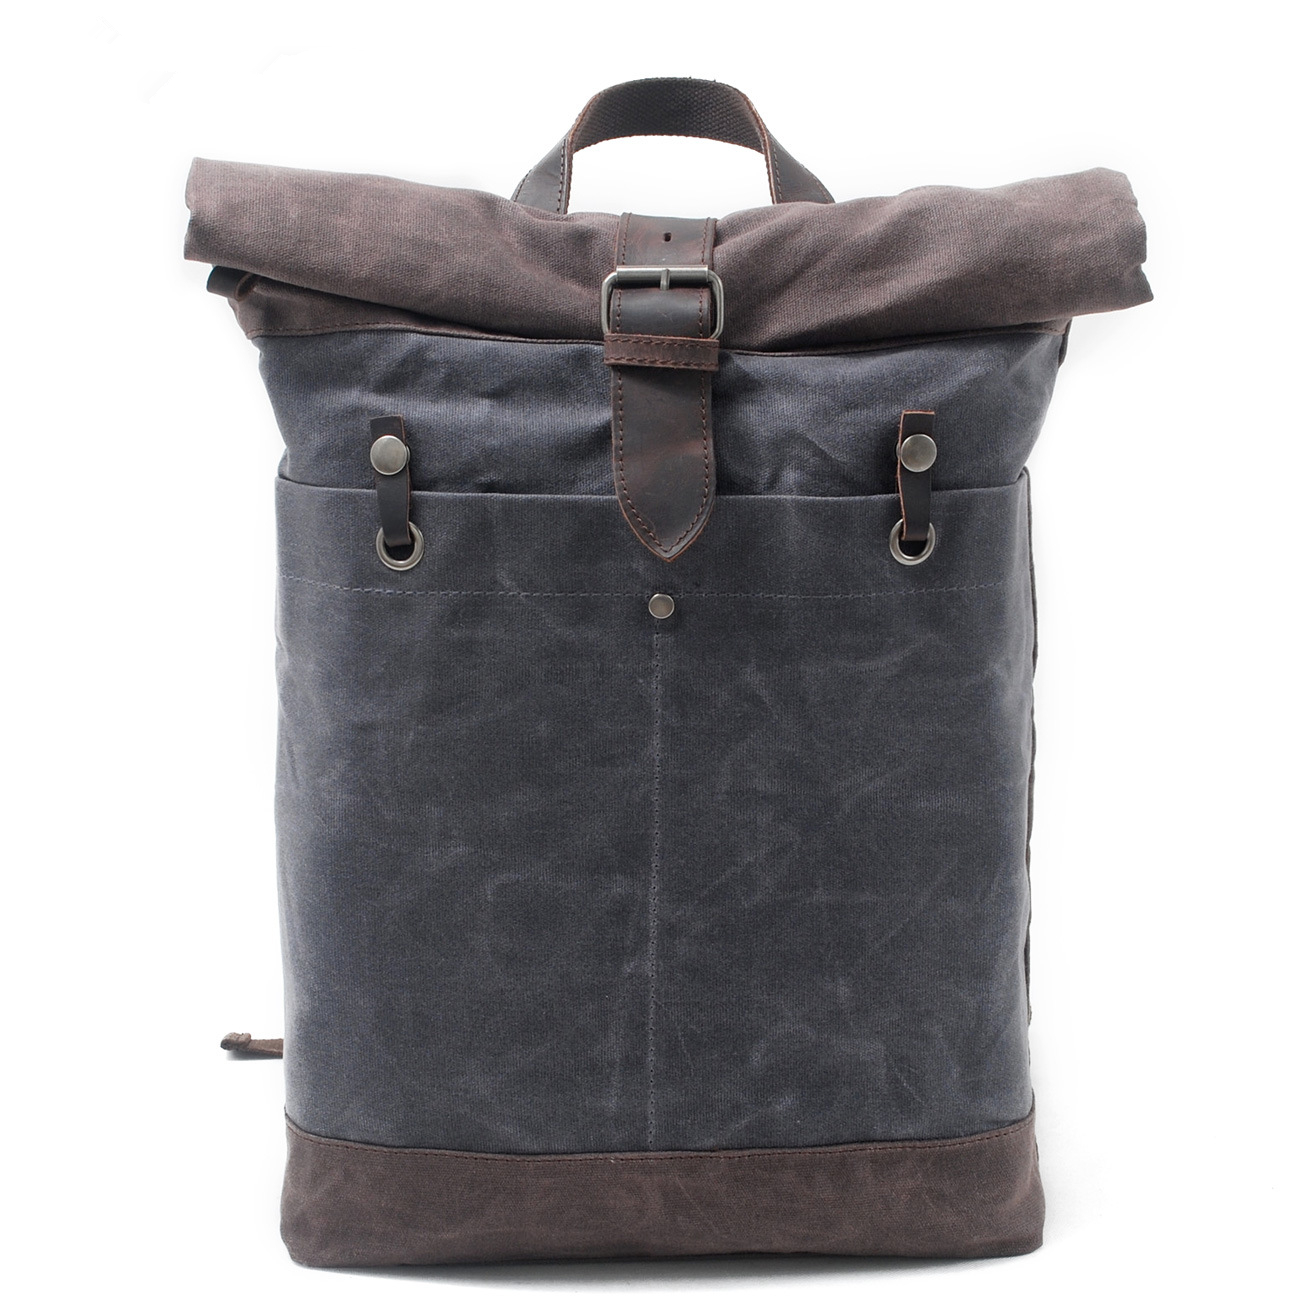 Melodycollection Man OilSkin Bags Batik Waxed Canvas Rucksack Backpack Roll up top bag men's waterproof out door travel Daypack